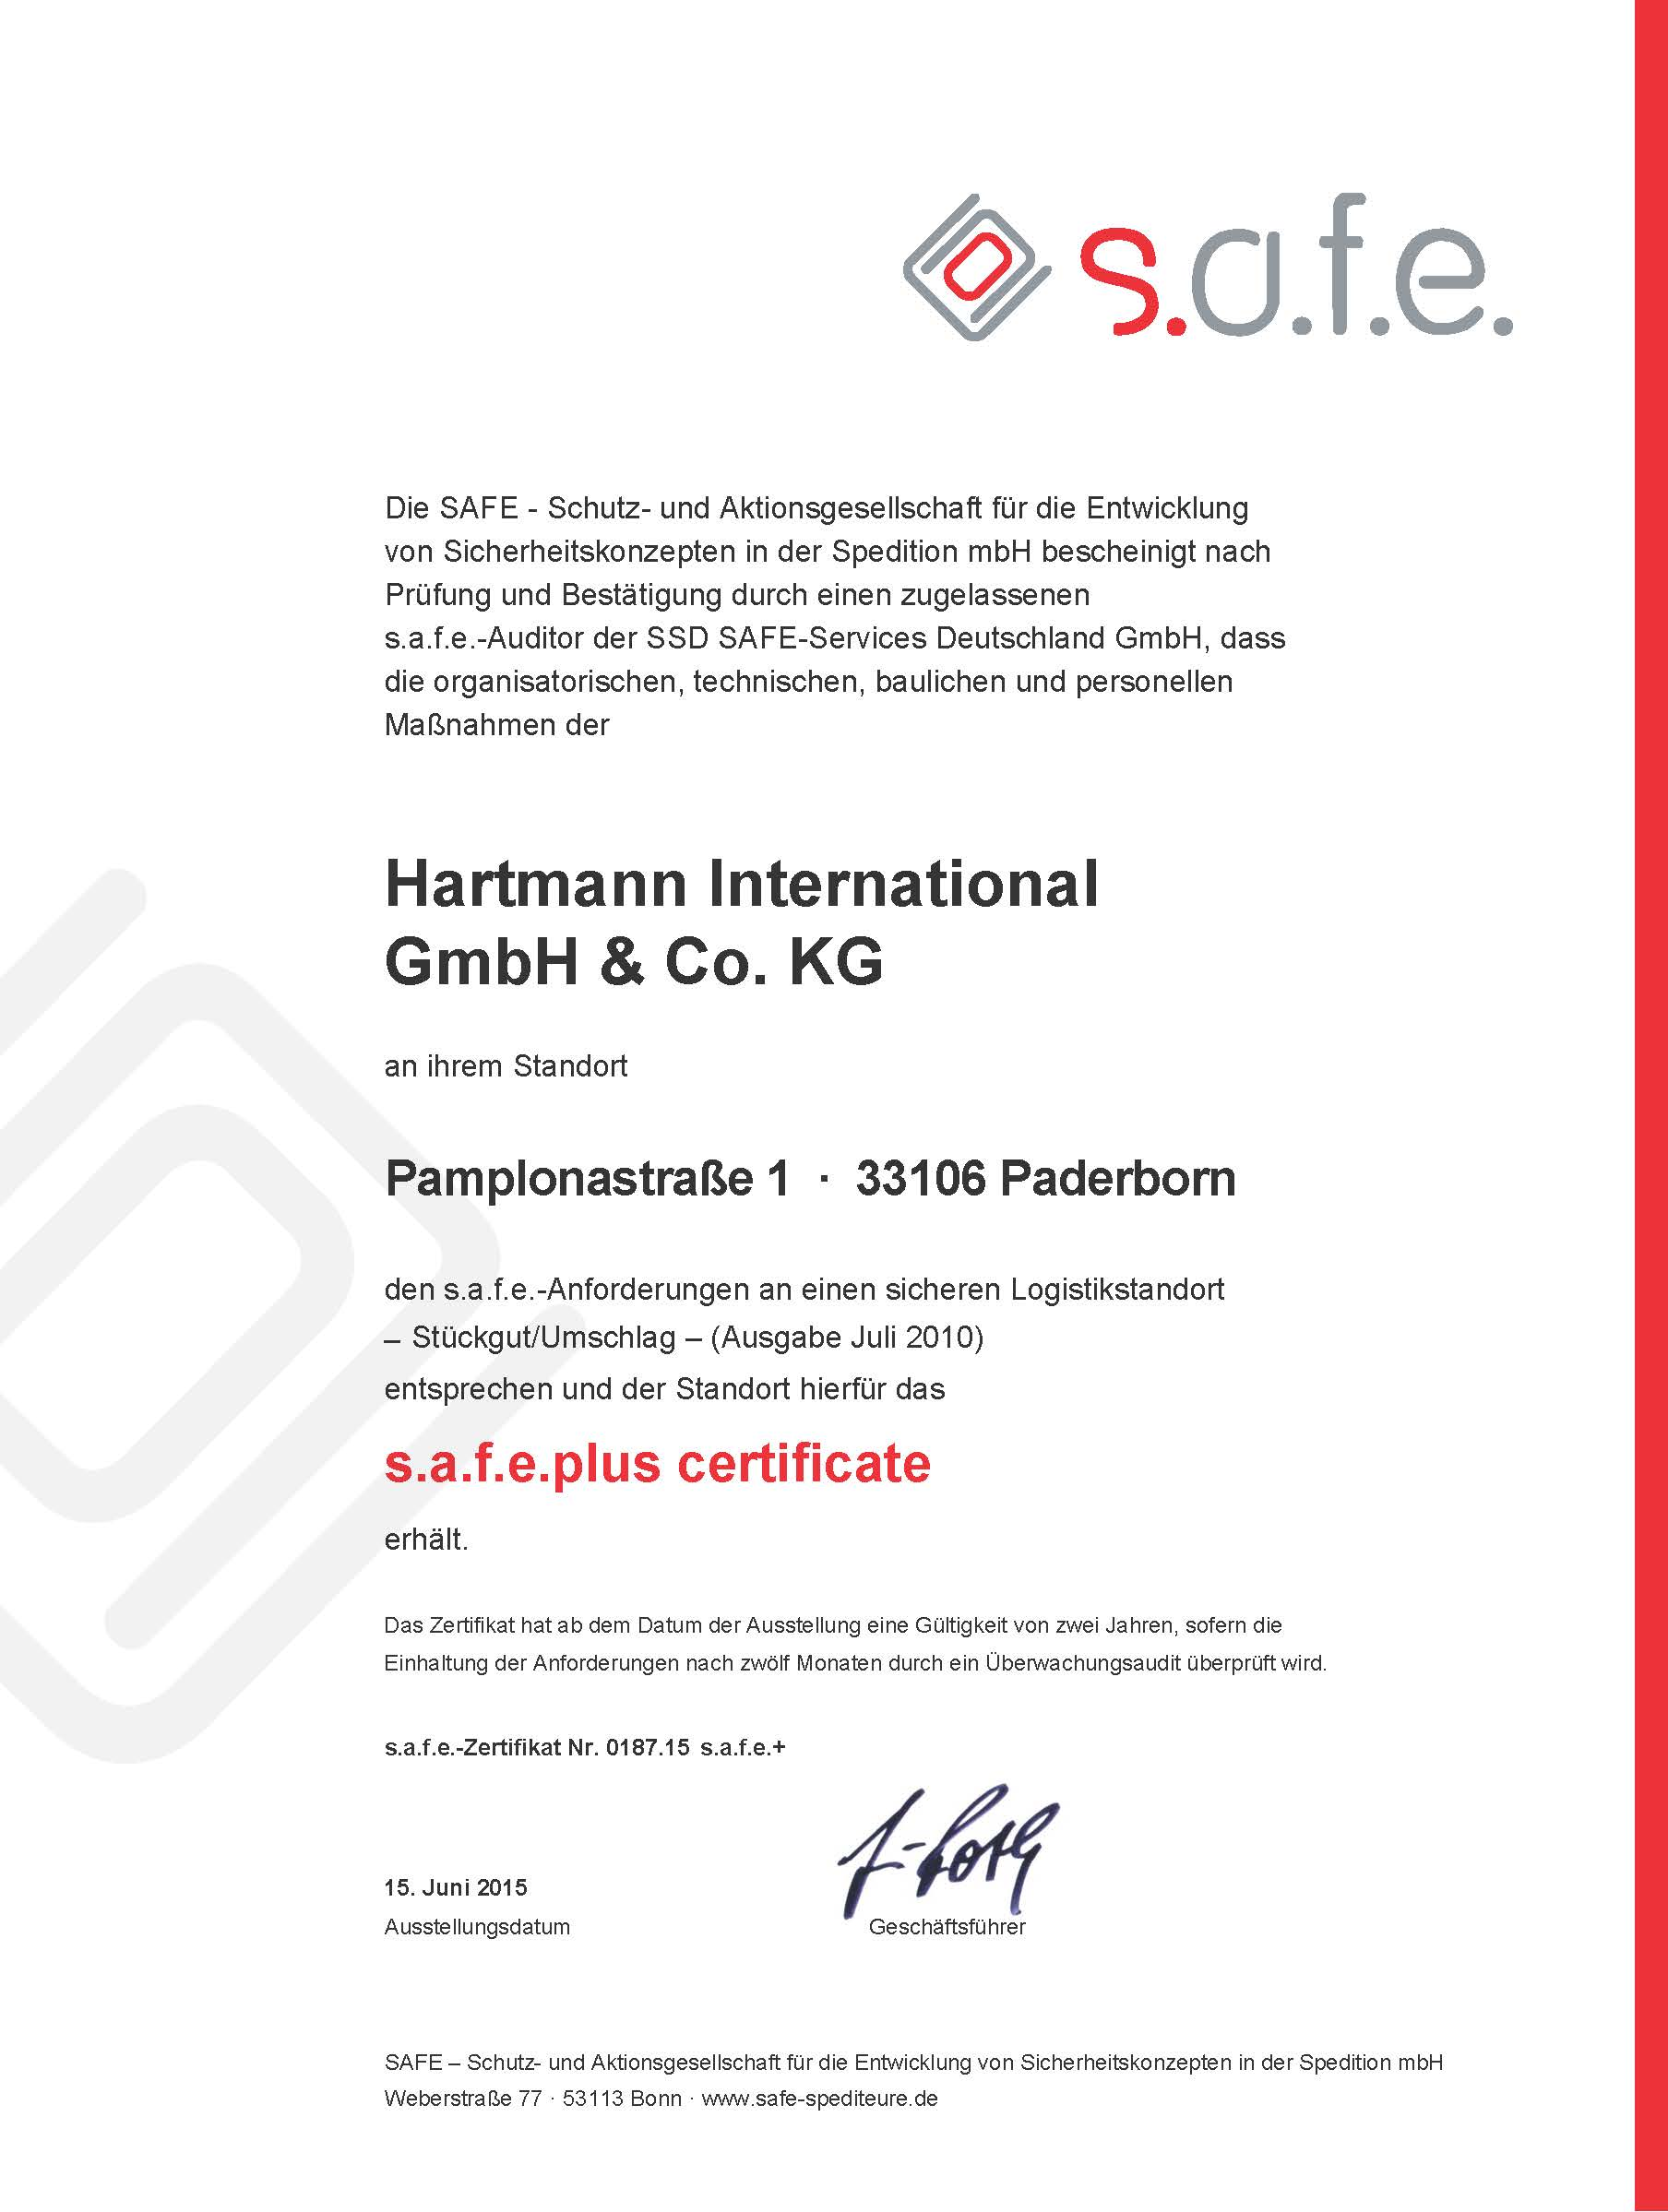 safe plus Hartmann Pamplonastr. 2015 SU